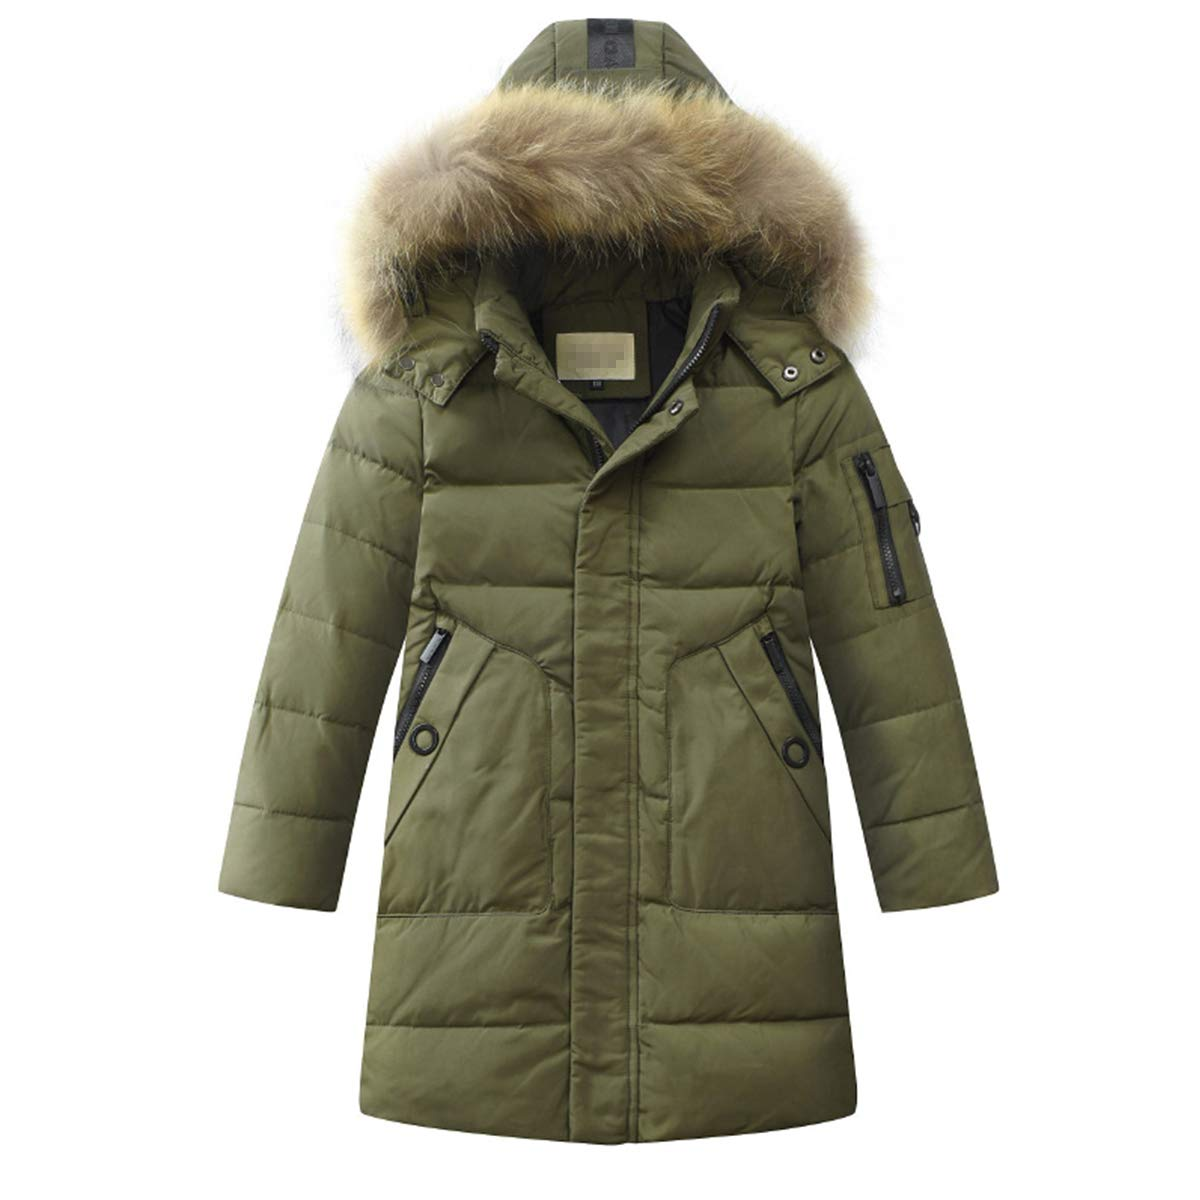 LISUEYNE Boys Kids Winter Hooded Down Coat Puffer Jacket Big Boys Mid-Long HM1811